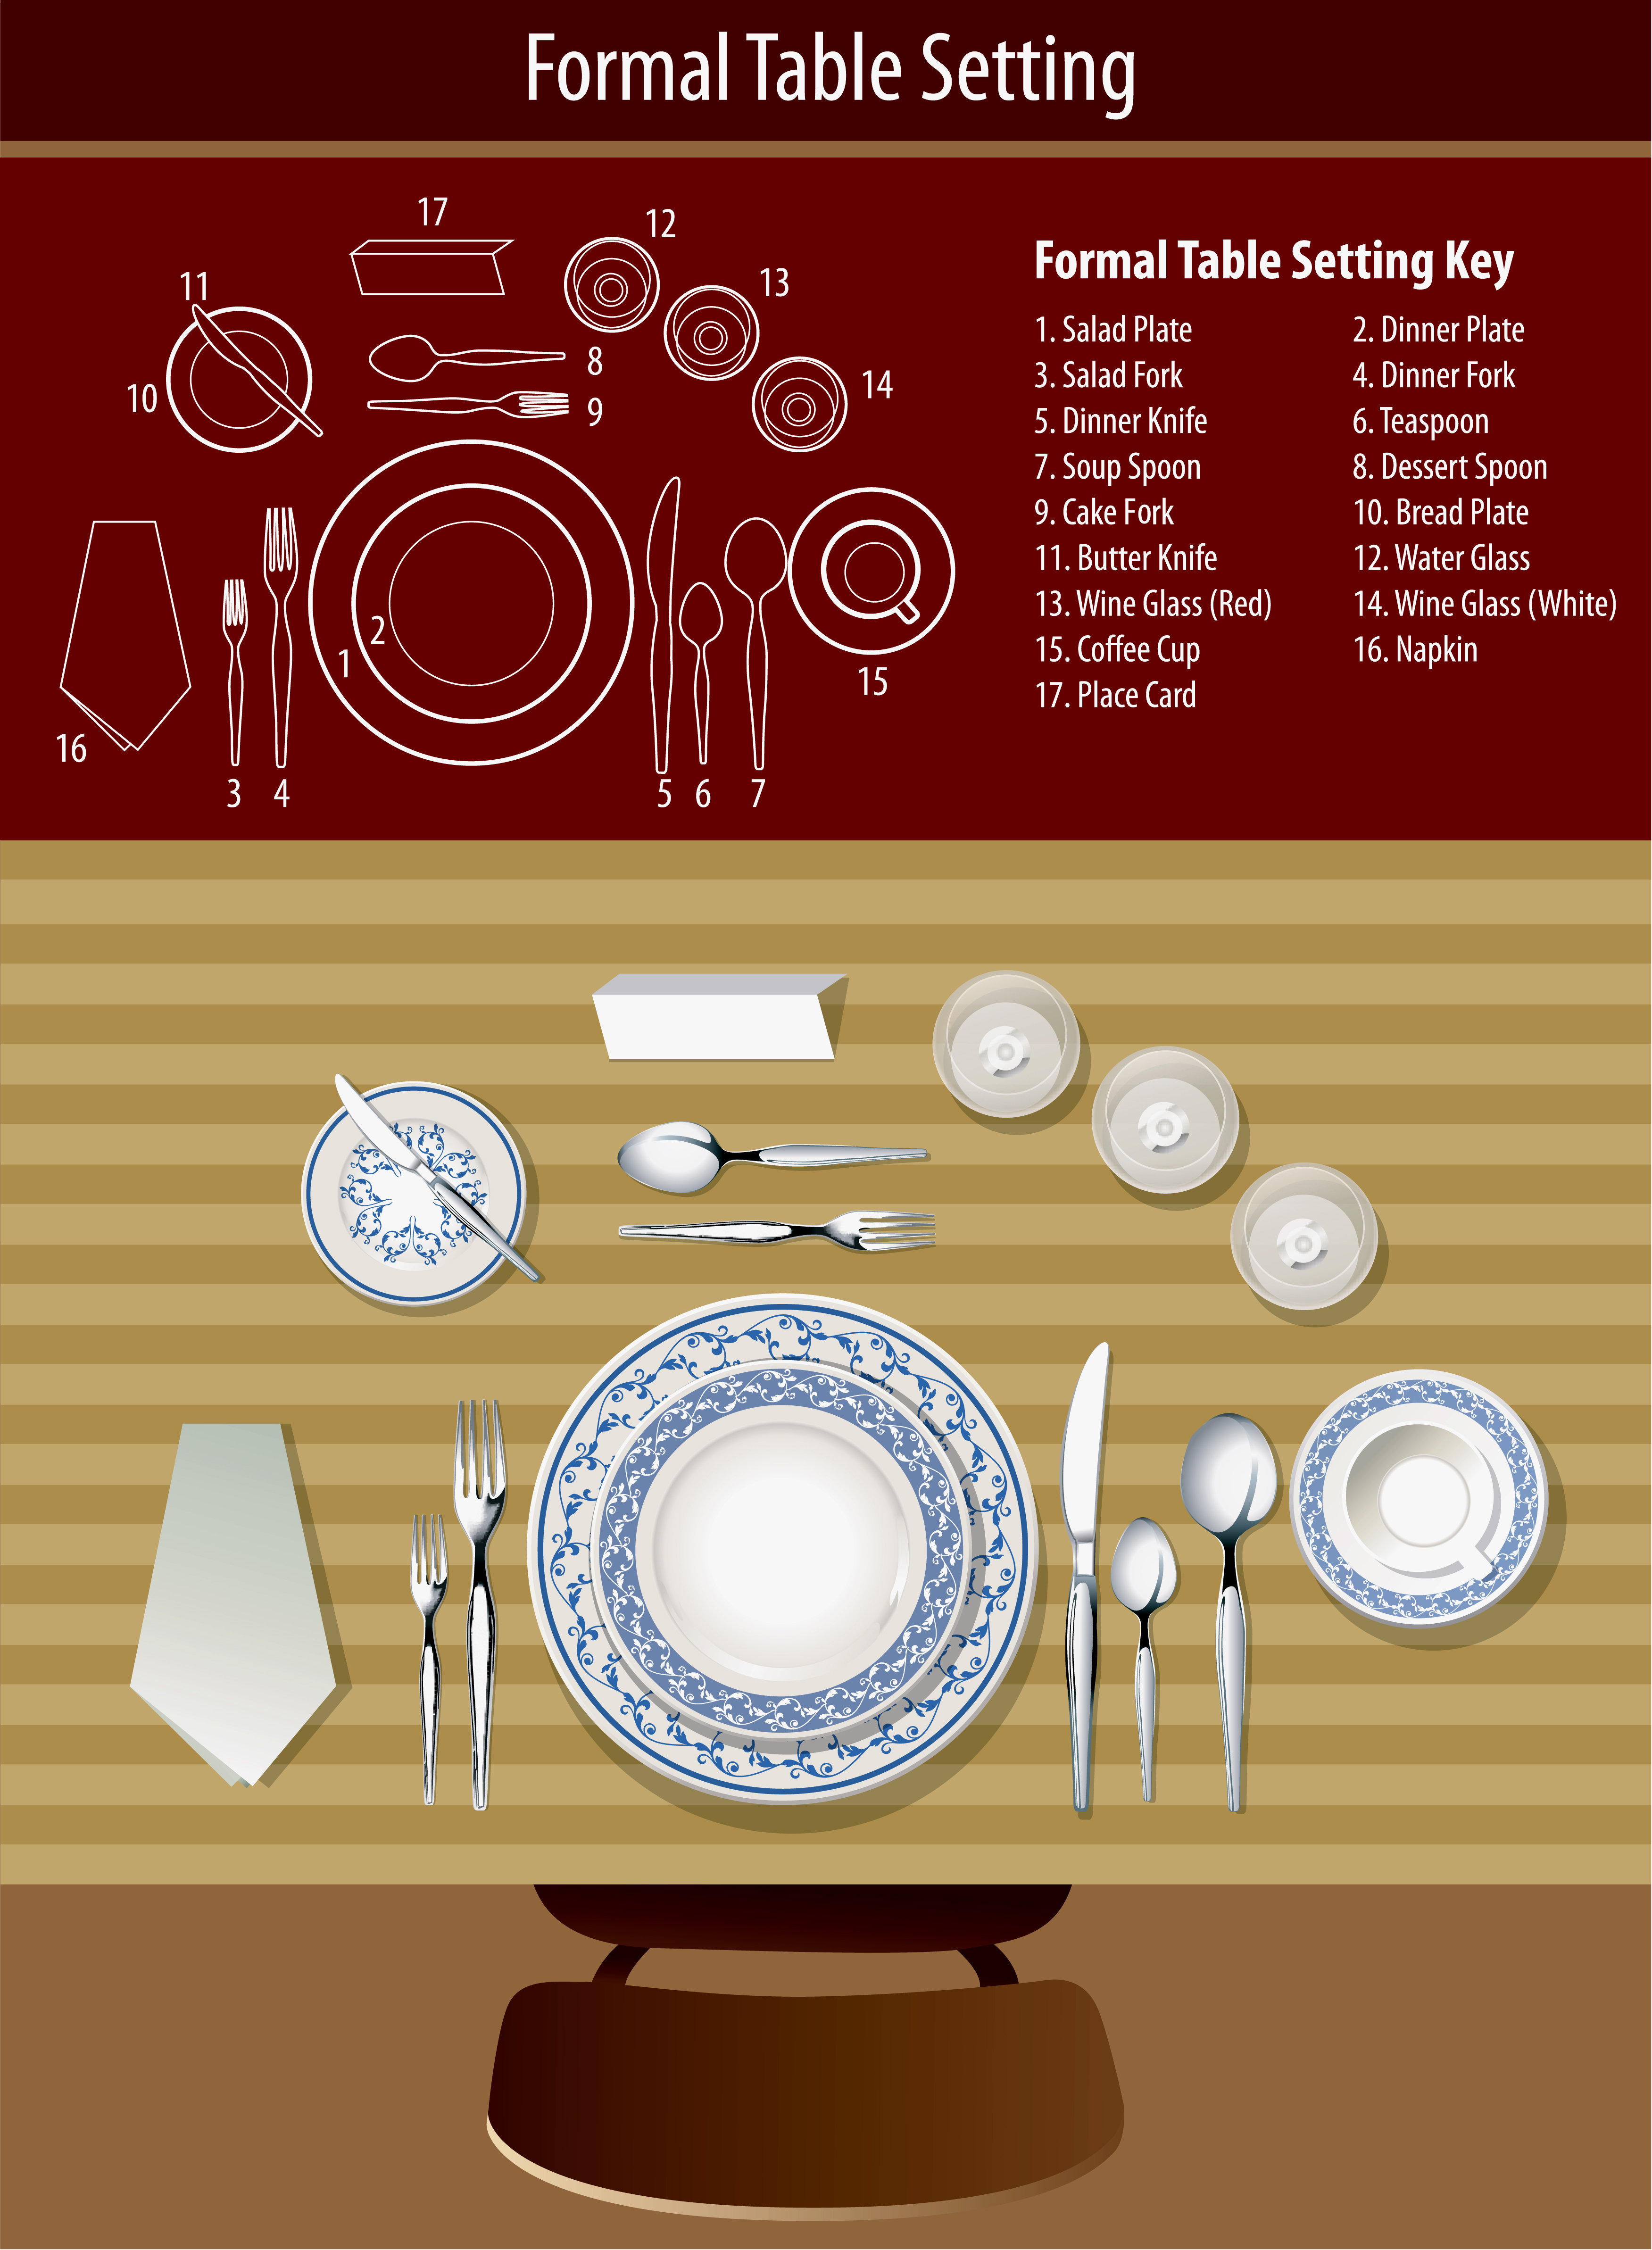 Fine Dining Etiquette for Servers Fine Dining Server  : serverdiagram from www.webstaurantstore.com size 3503 x 4771 jpeg 1268kB